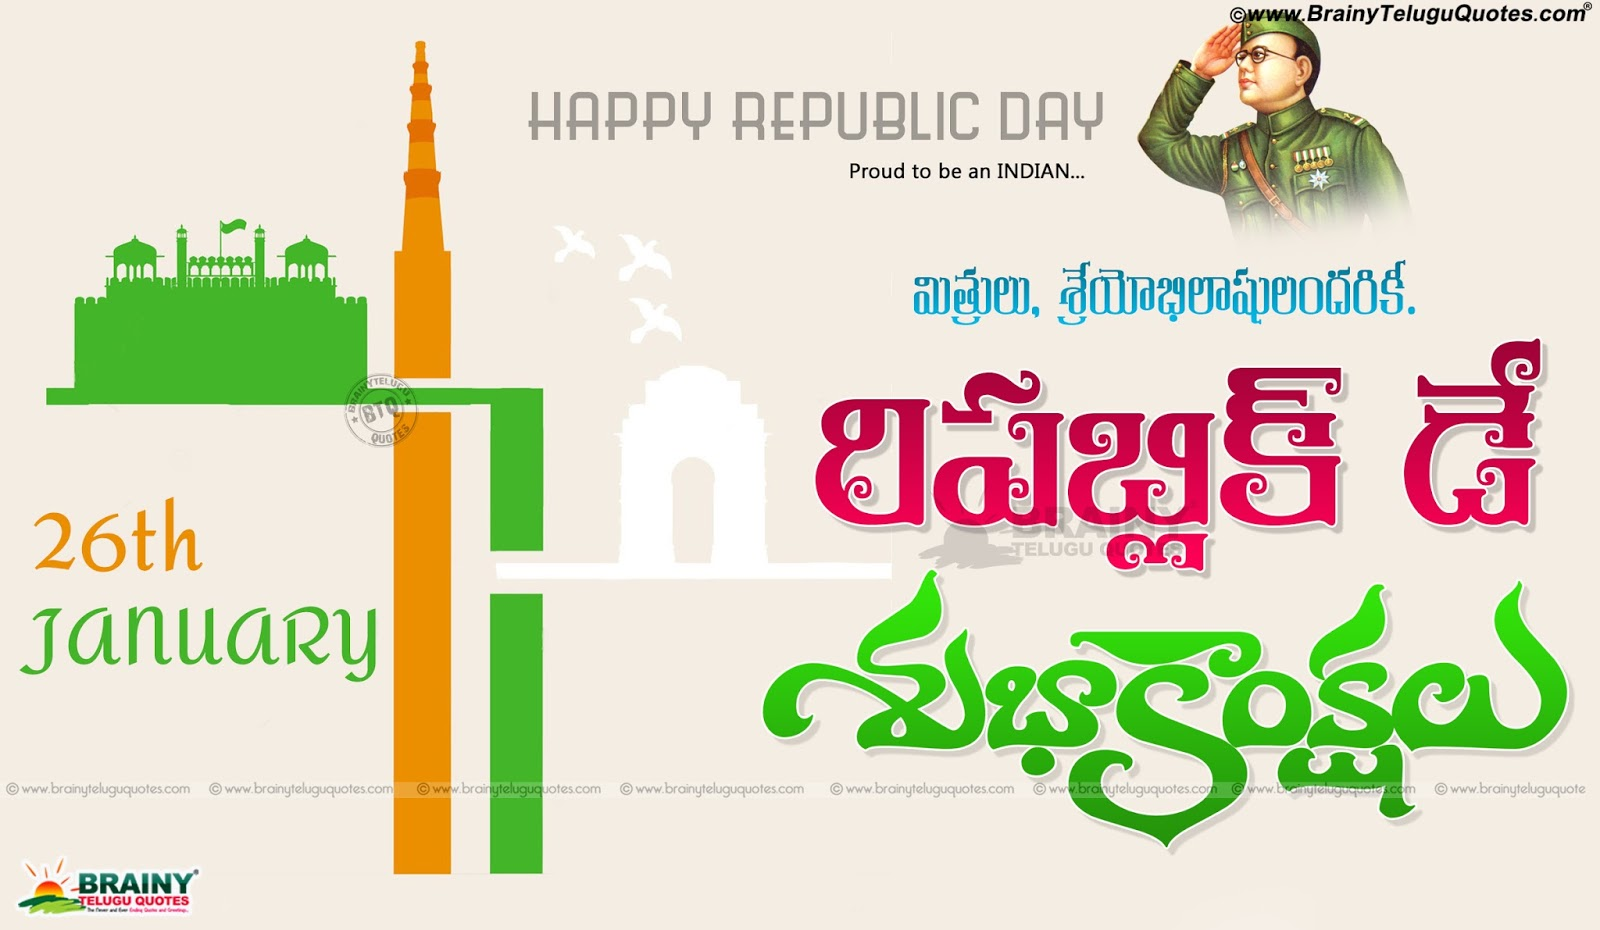 Happy Republic Day Telugu Quotations Greetings Hd